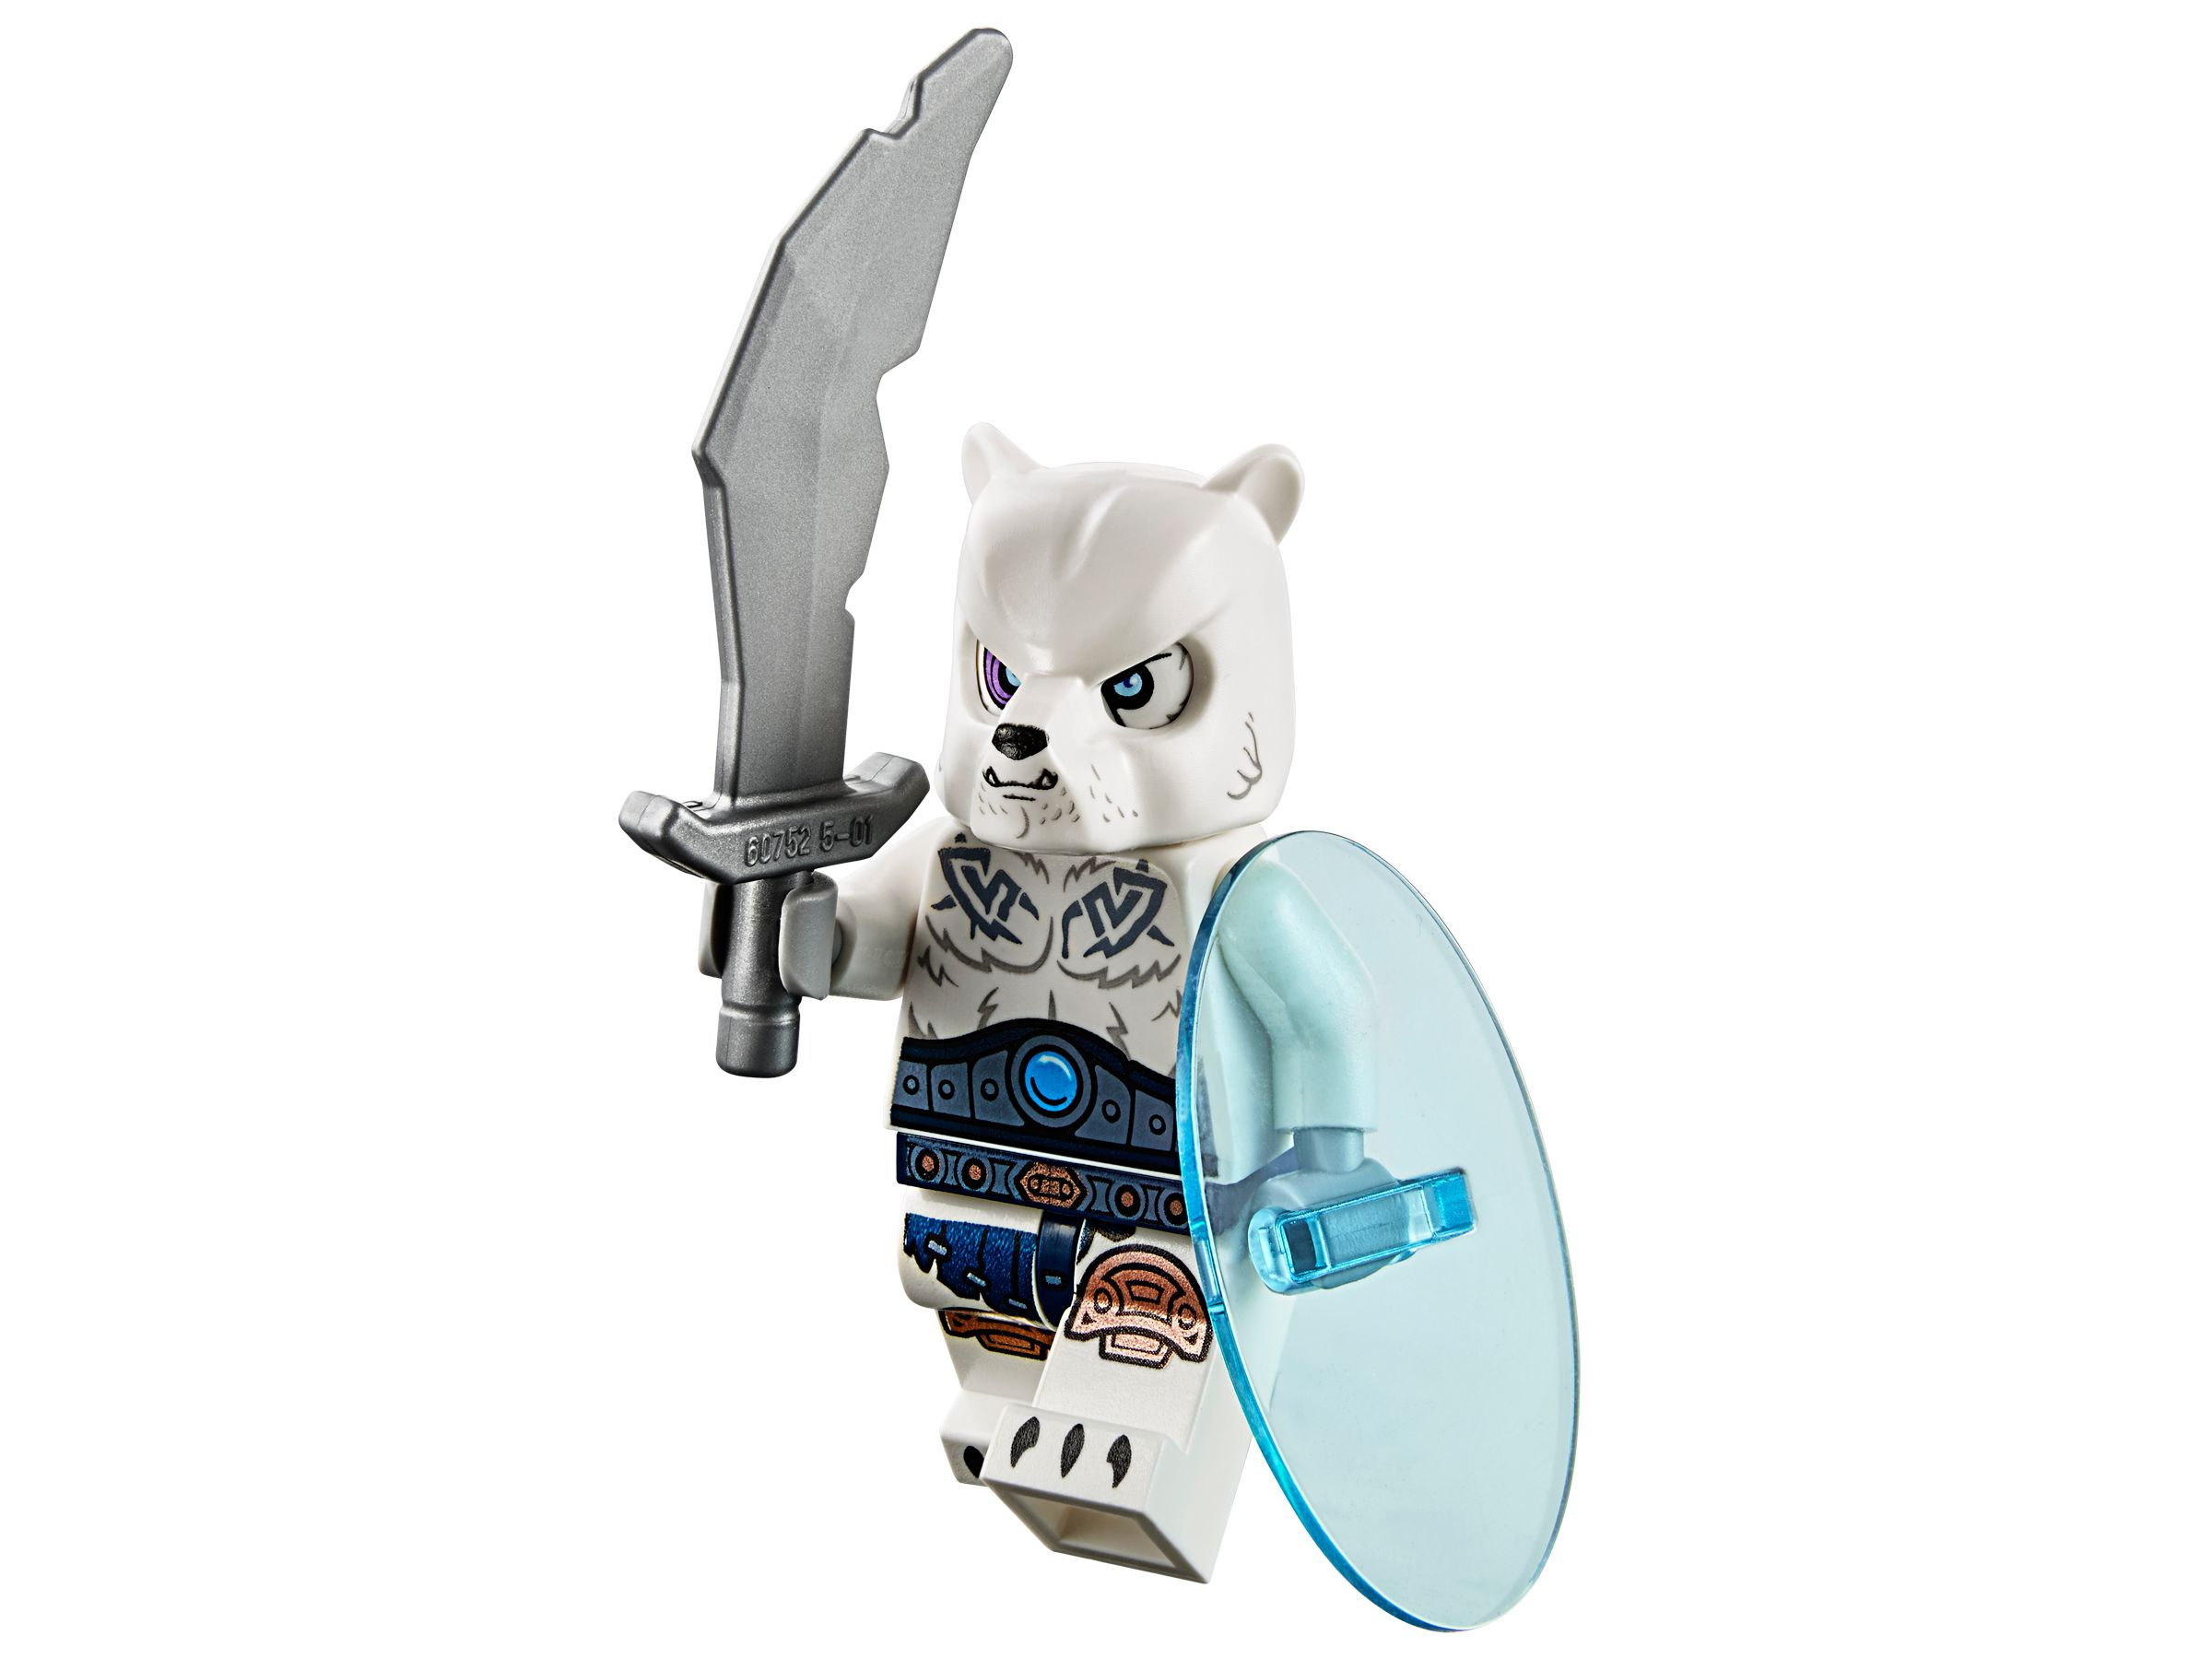 LEGO Legends Of Chima 70230 Eisbärstamm-Set LEGO_70230_alt3.jpg